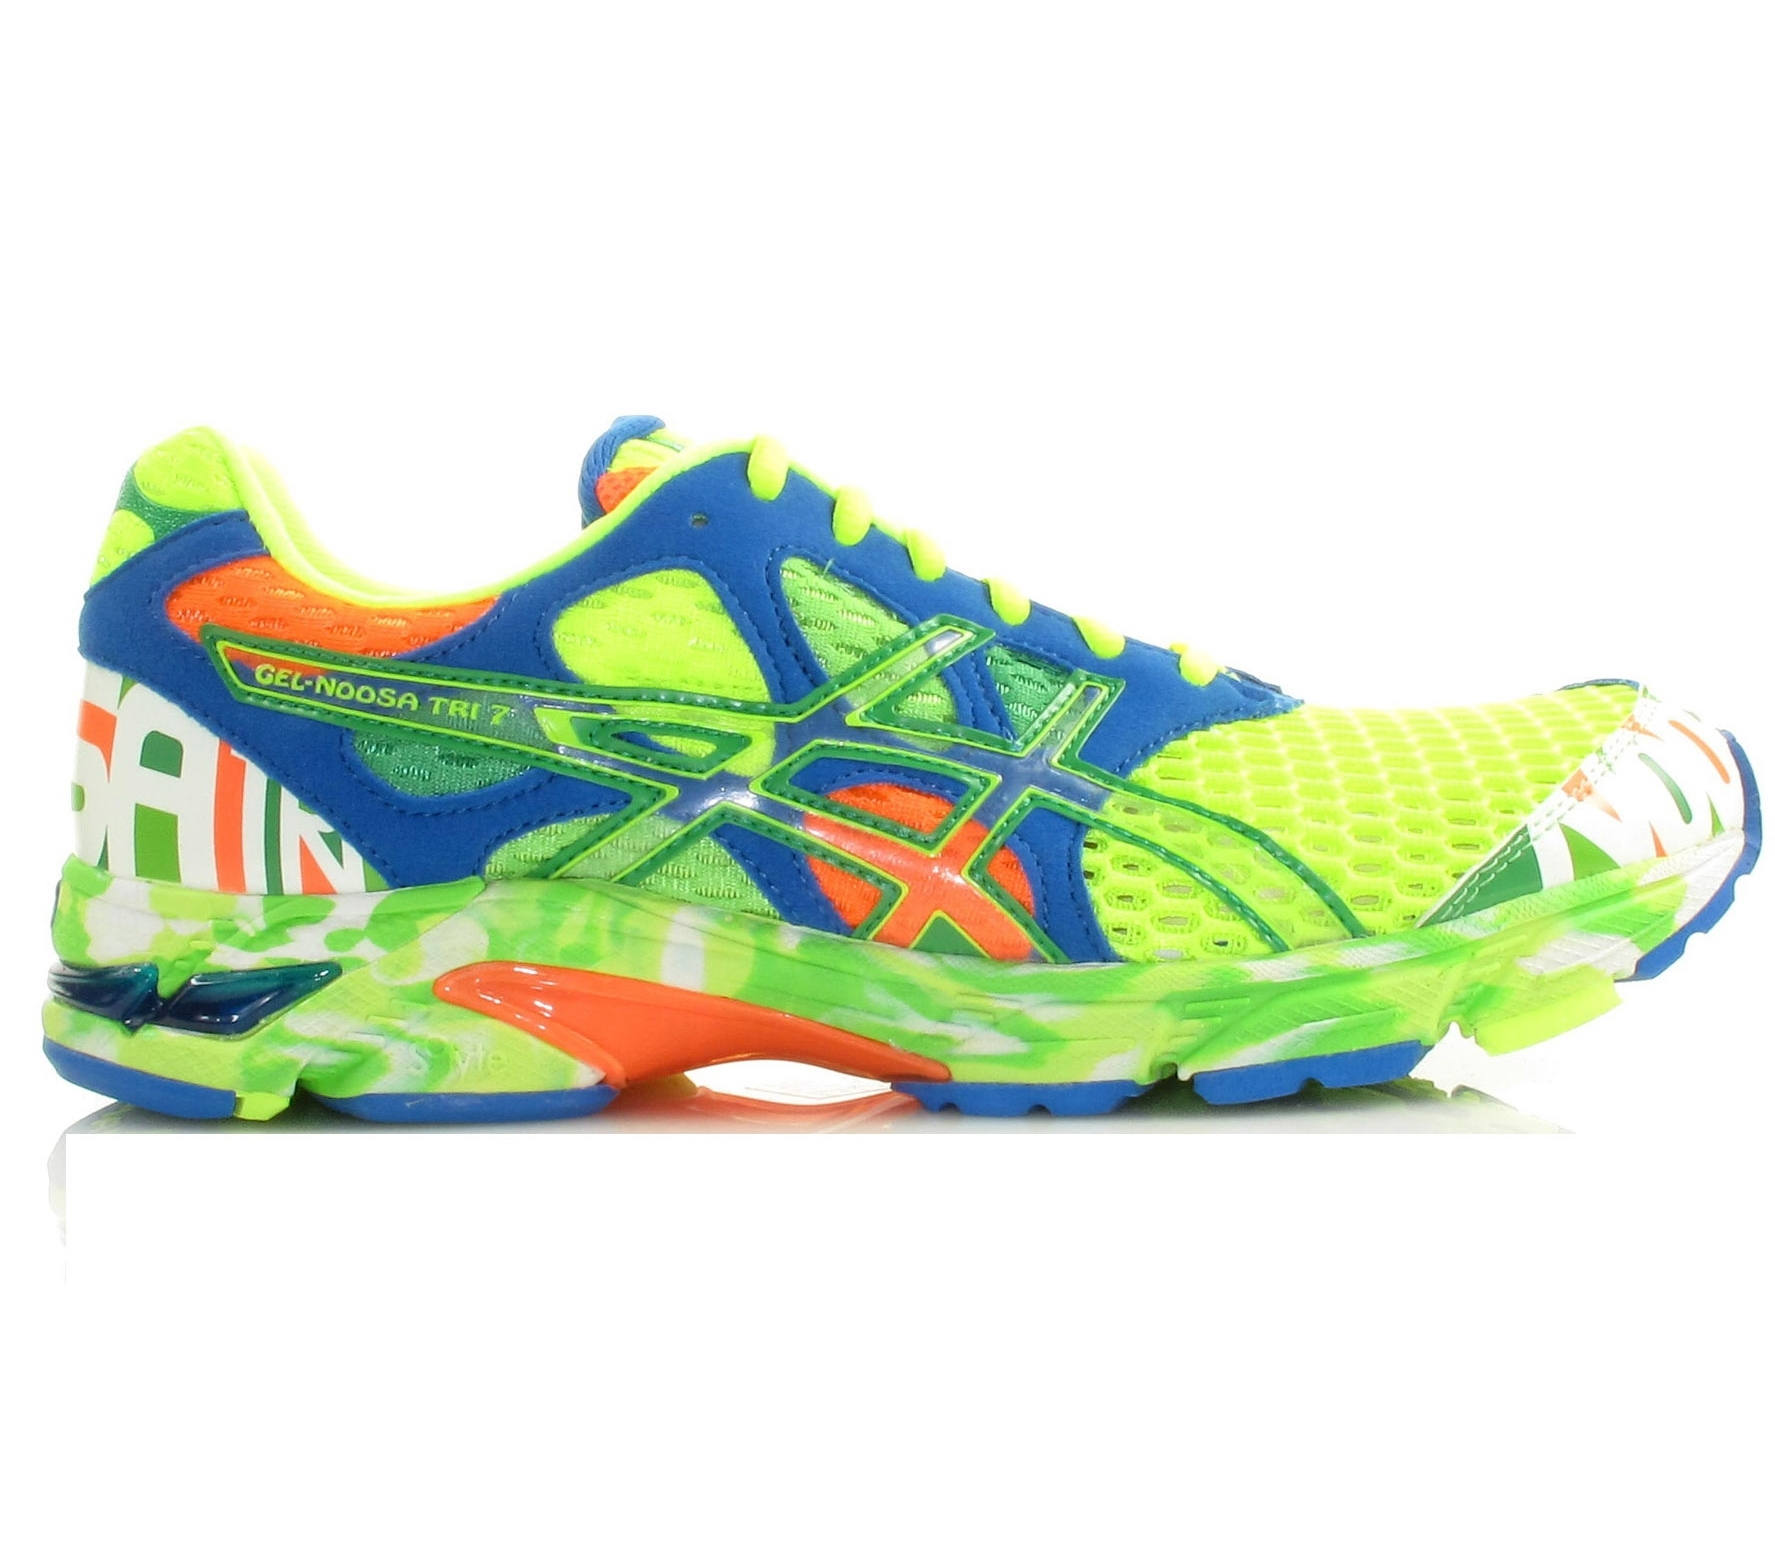 asics gel noosa tri 7 test